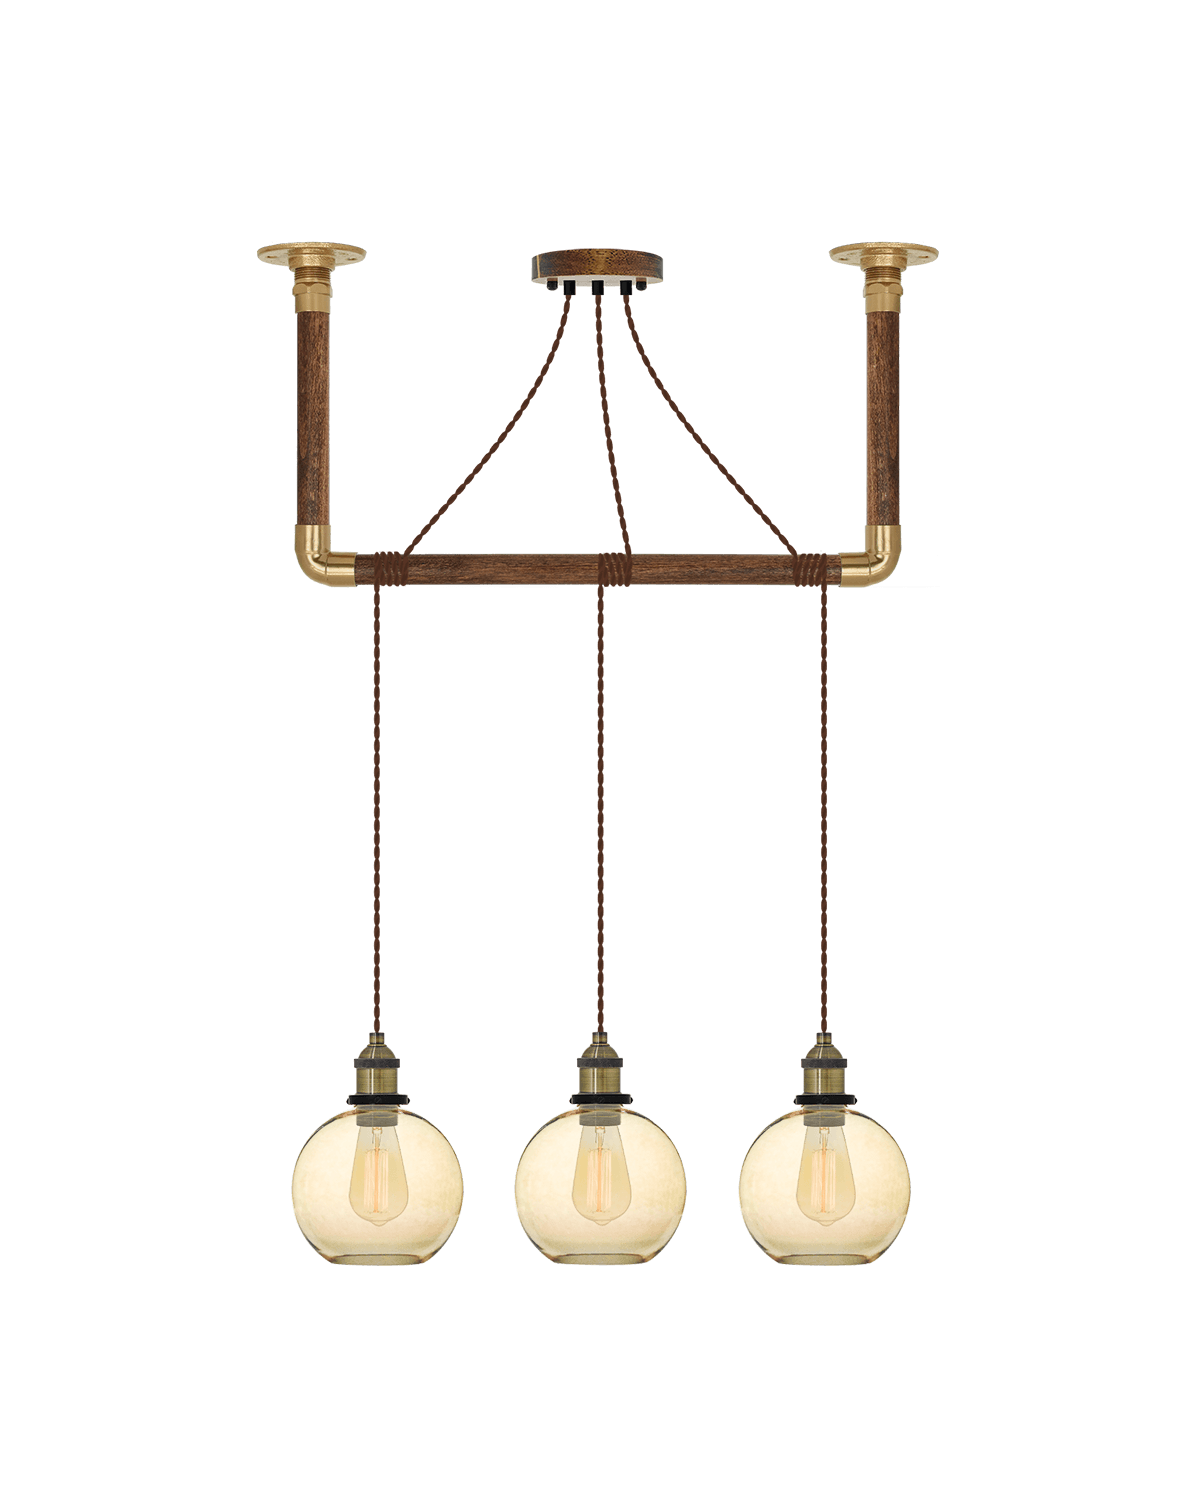 Wrap Chandelier: Brown, Brass and Amber Glass Shade Hangout Lighting 3 Pendants